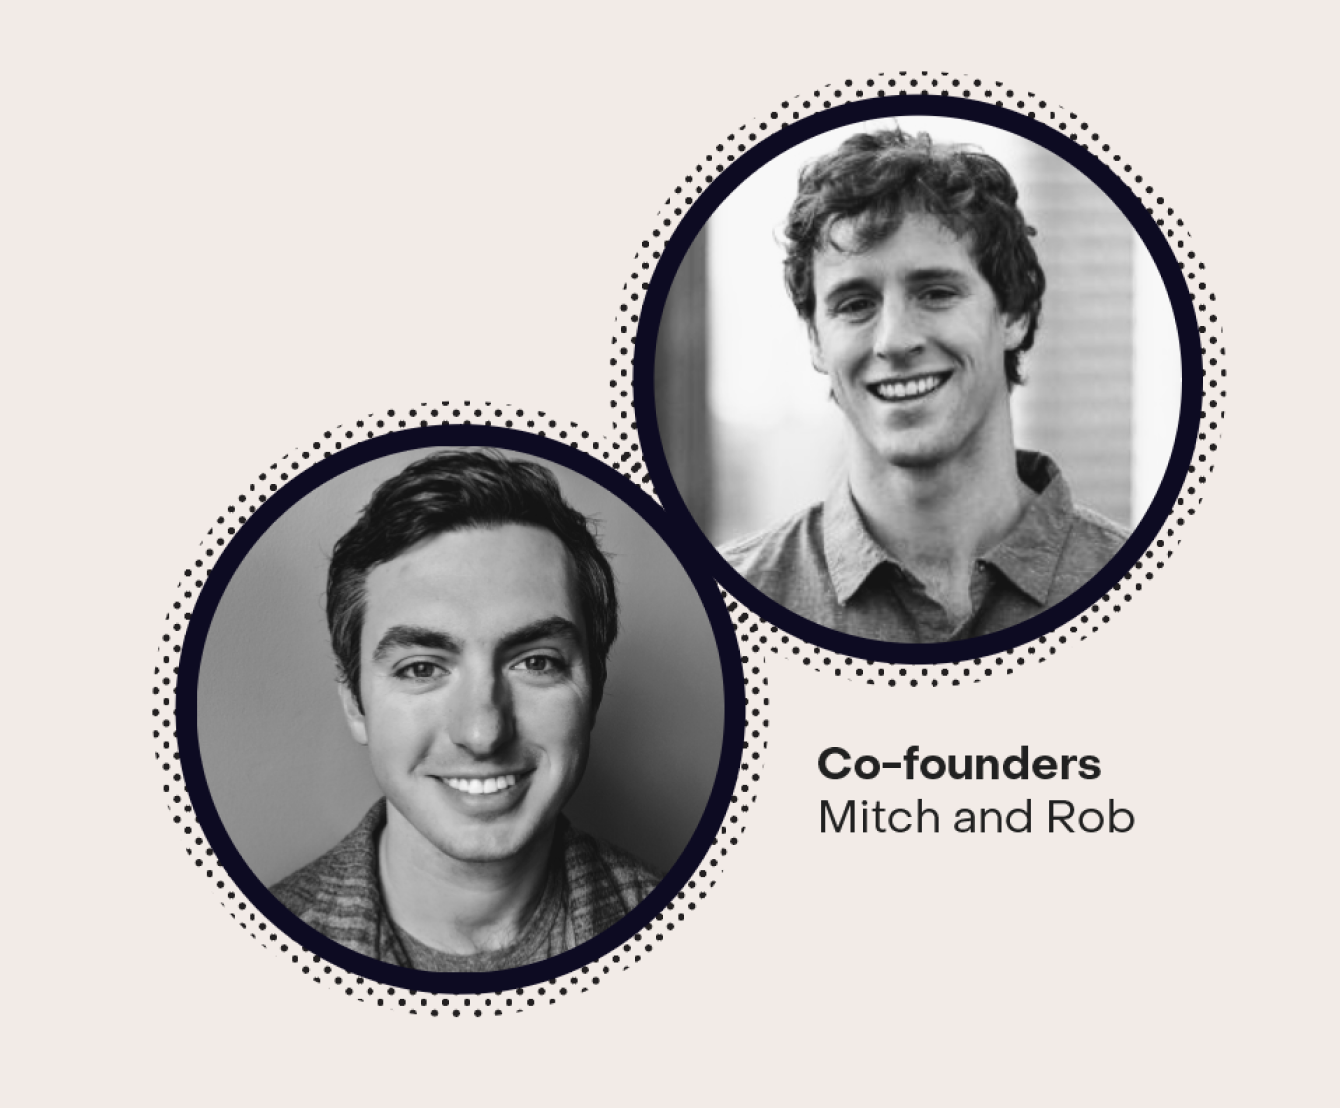 Co-founders, Mitch Stutler and Rob Walsh, images in circular avatar styling.